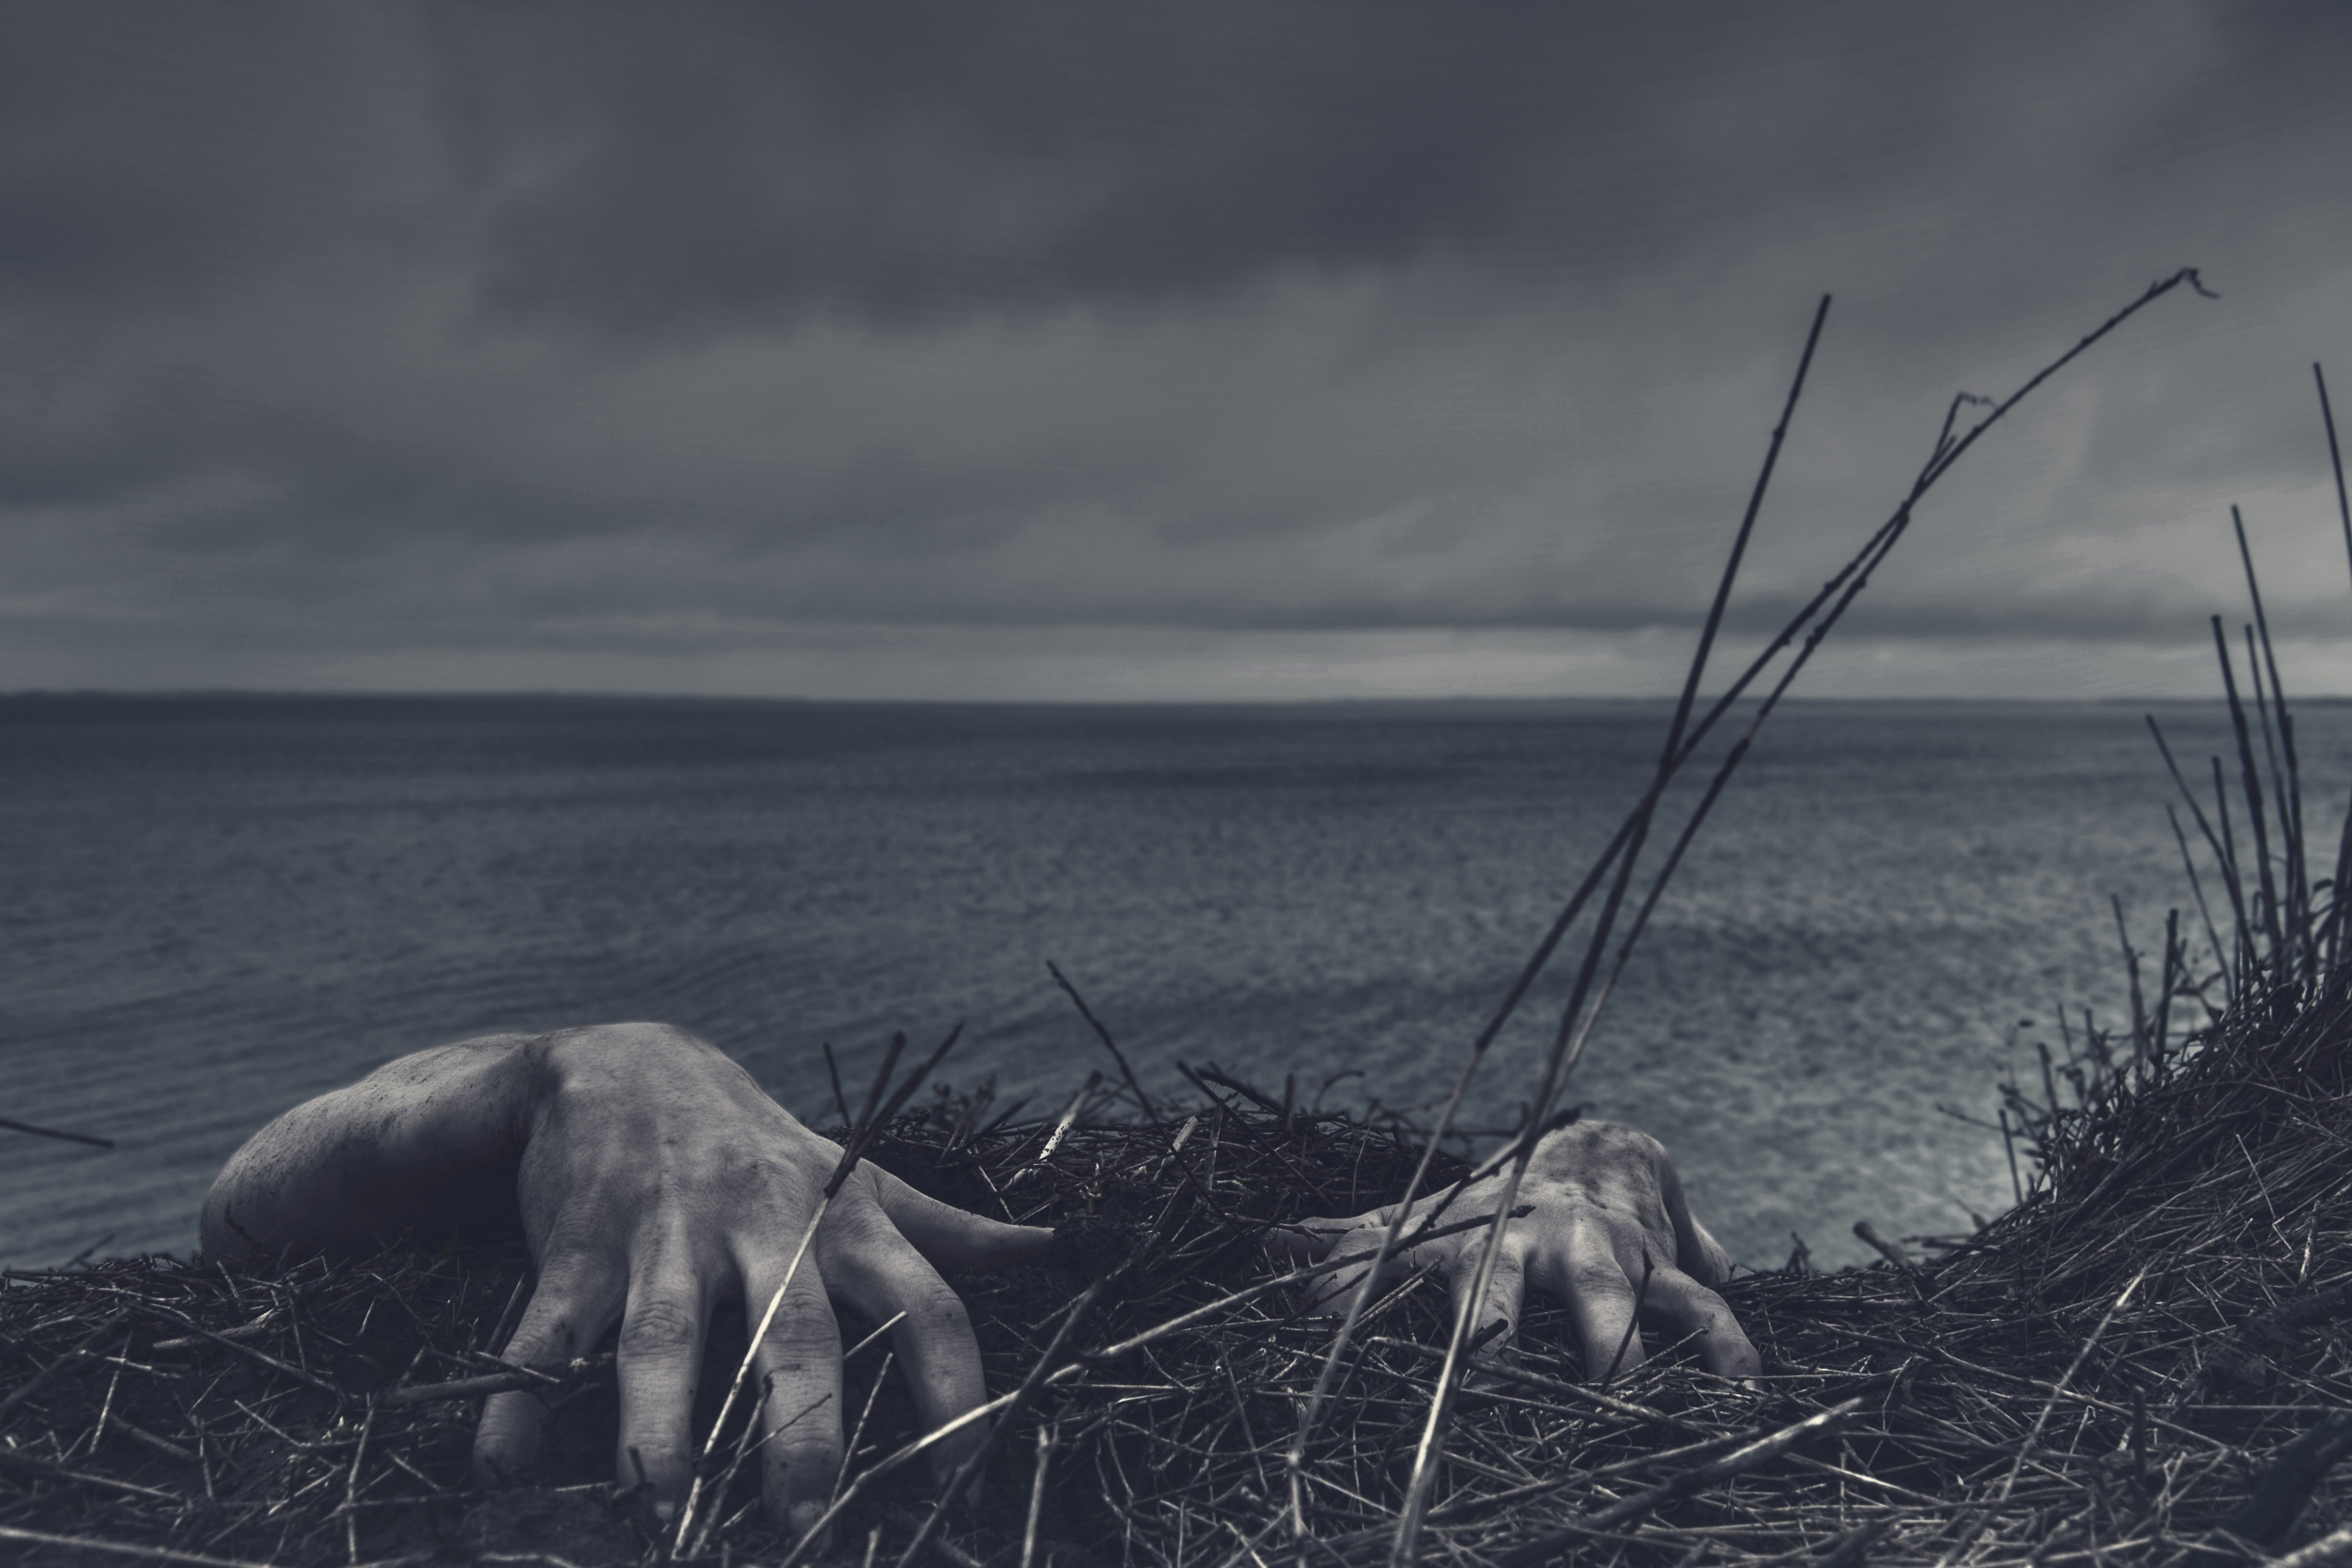 Hands reaching onto the edge of a field where it drops off into the ocean.